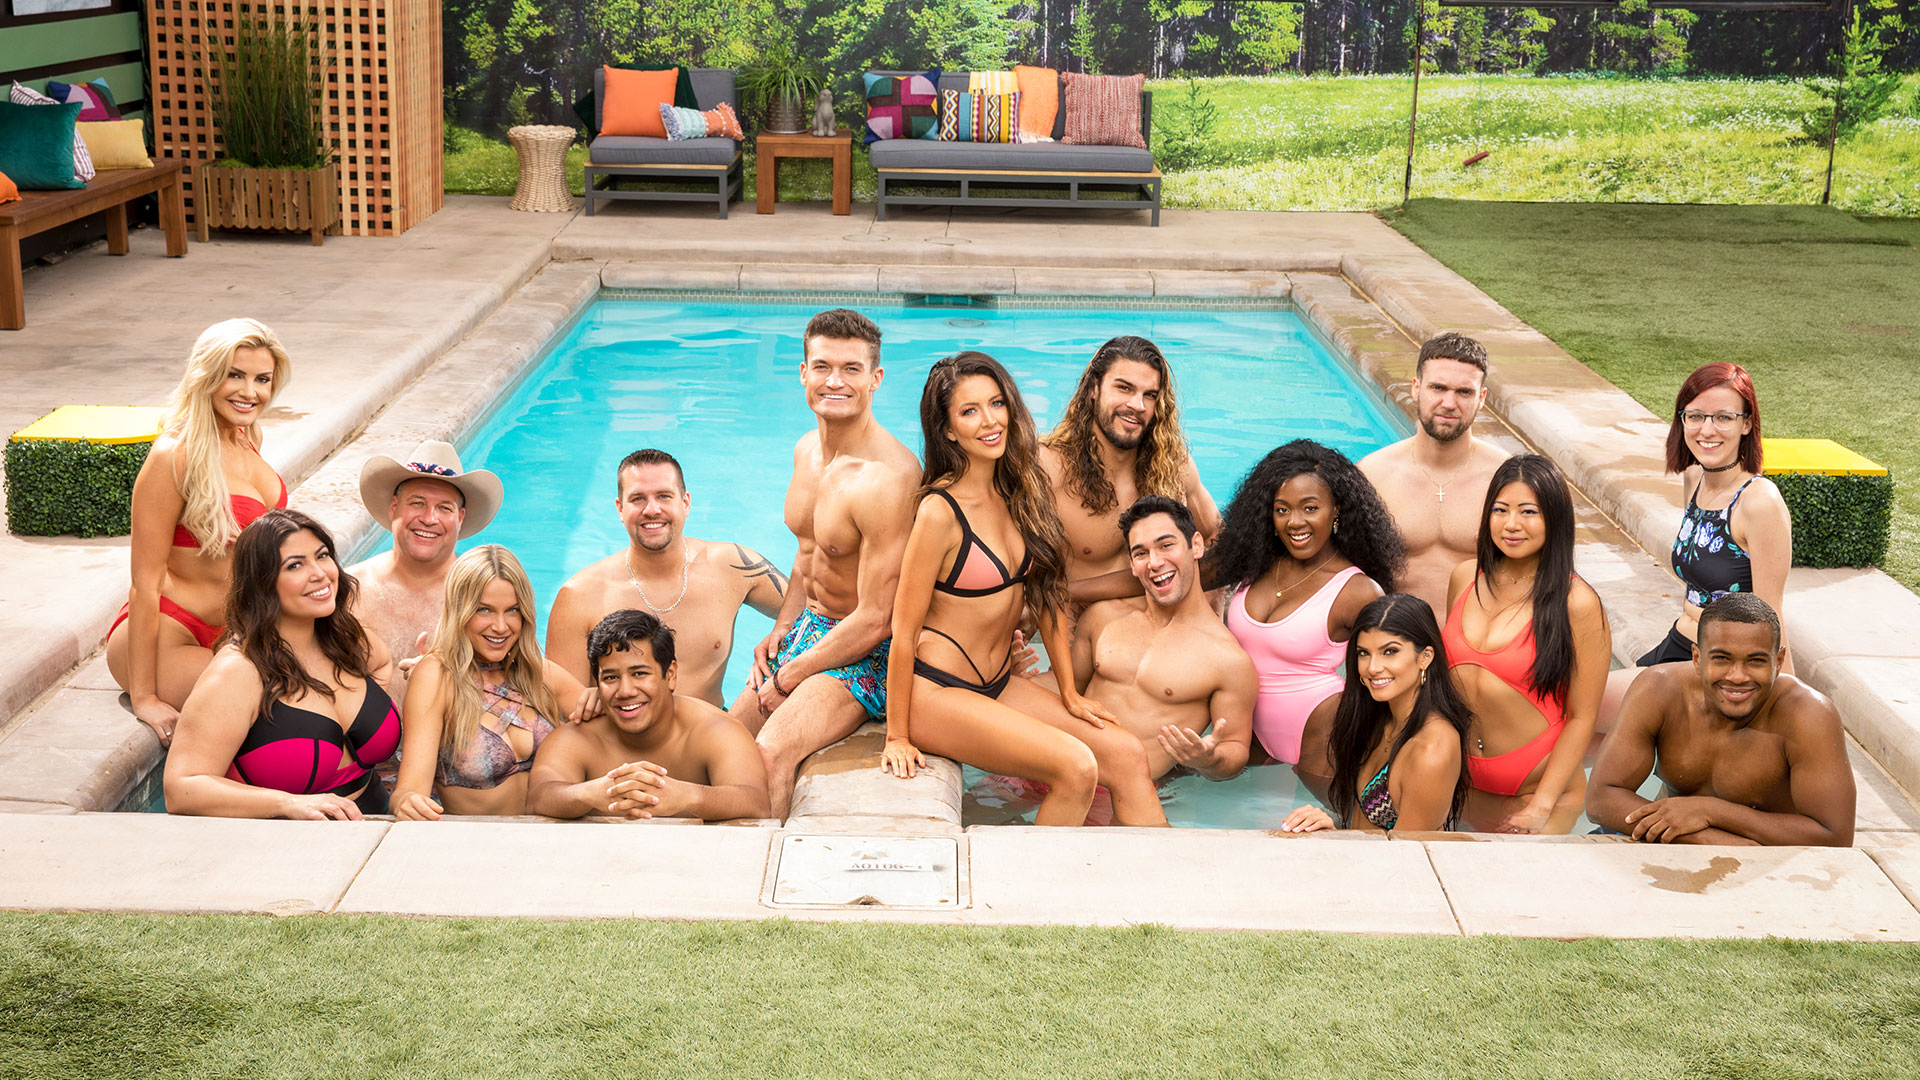 The BB21 Houseguests are suited up and about to make waves this summer.